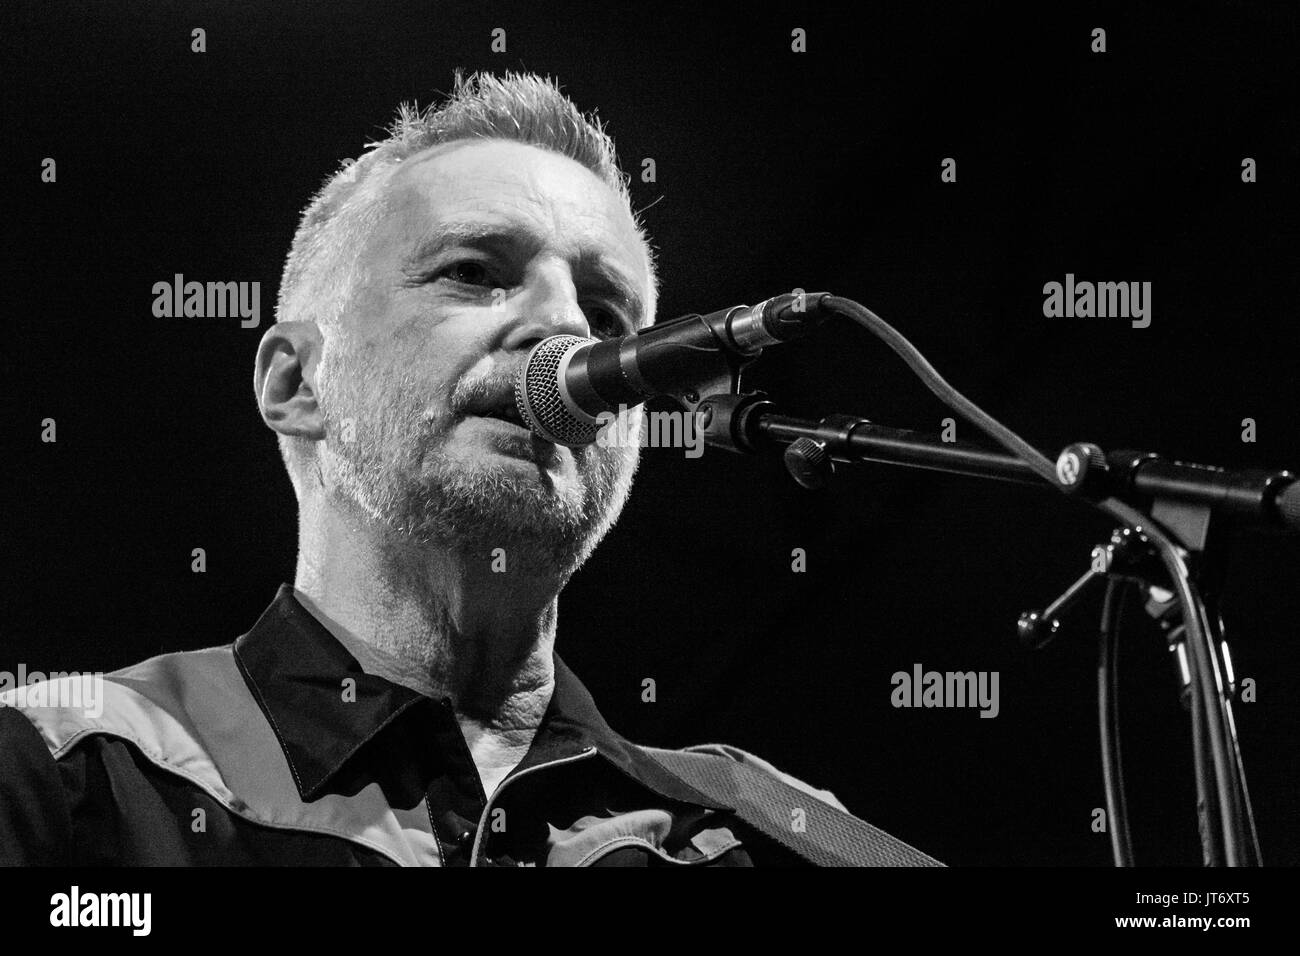 Milan, Italy. 5th August, 2017. Billy Bragg presents his new album 'Shine a Light' during a live performance. Credit: Luca Quadrio/Alamy Live News - Stock Image